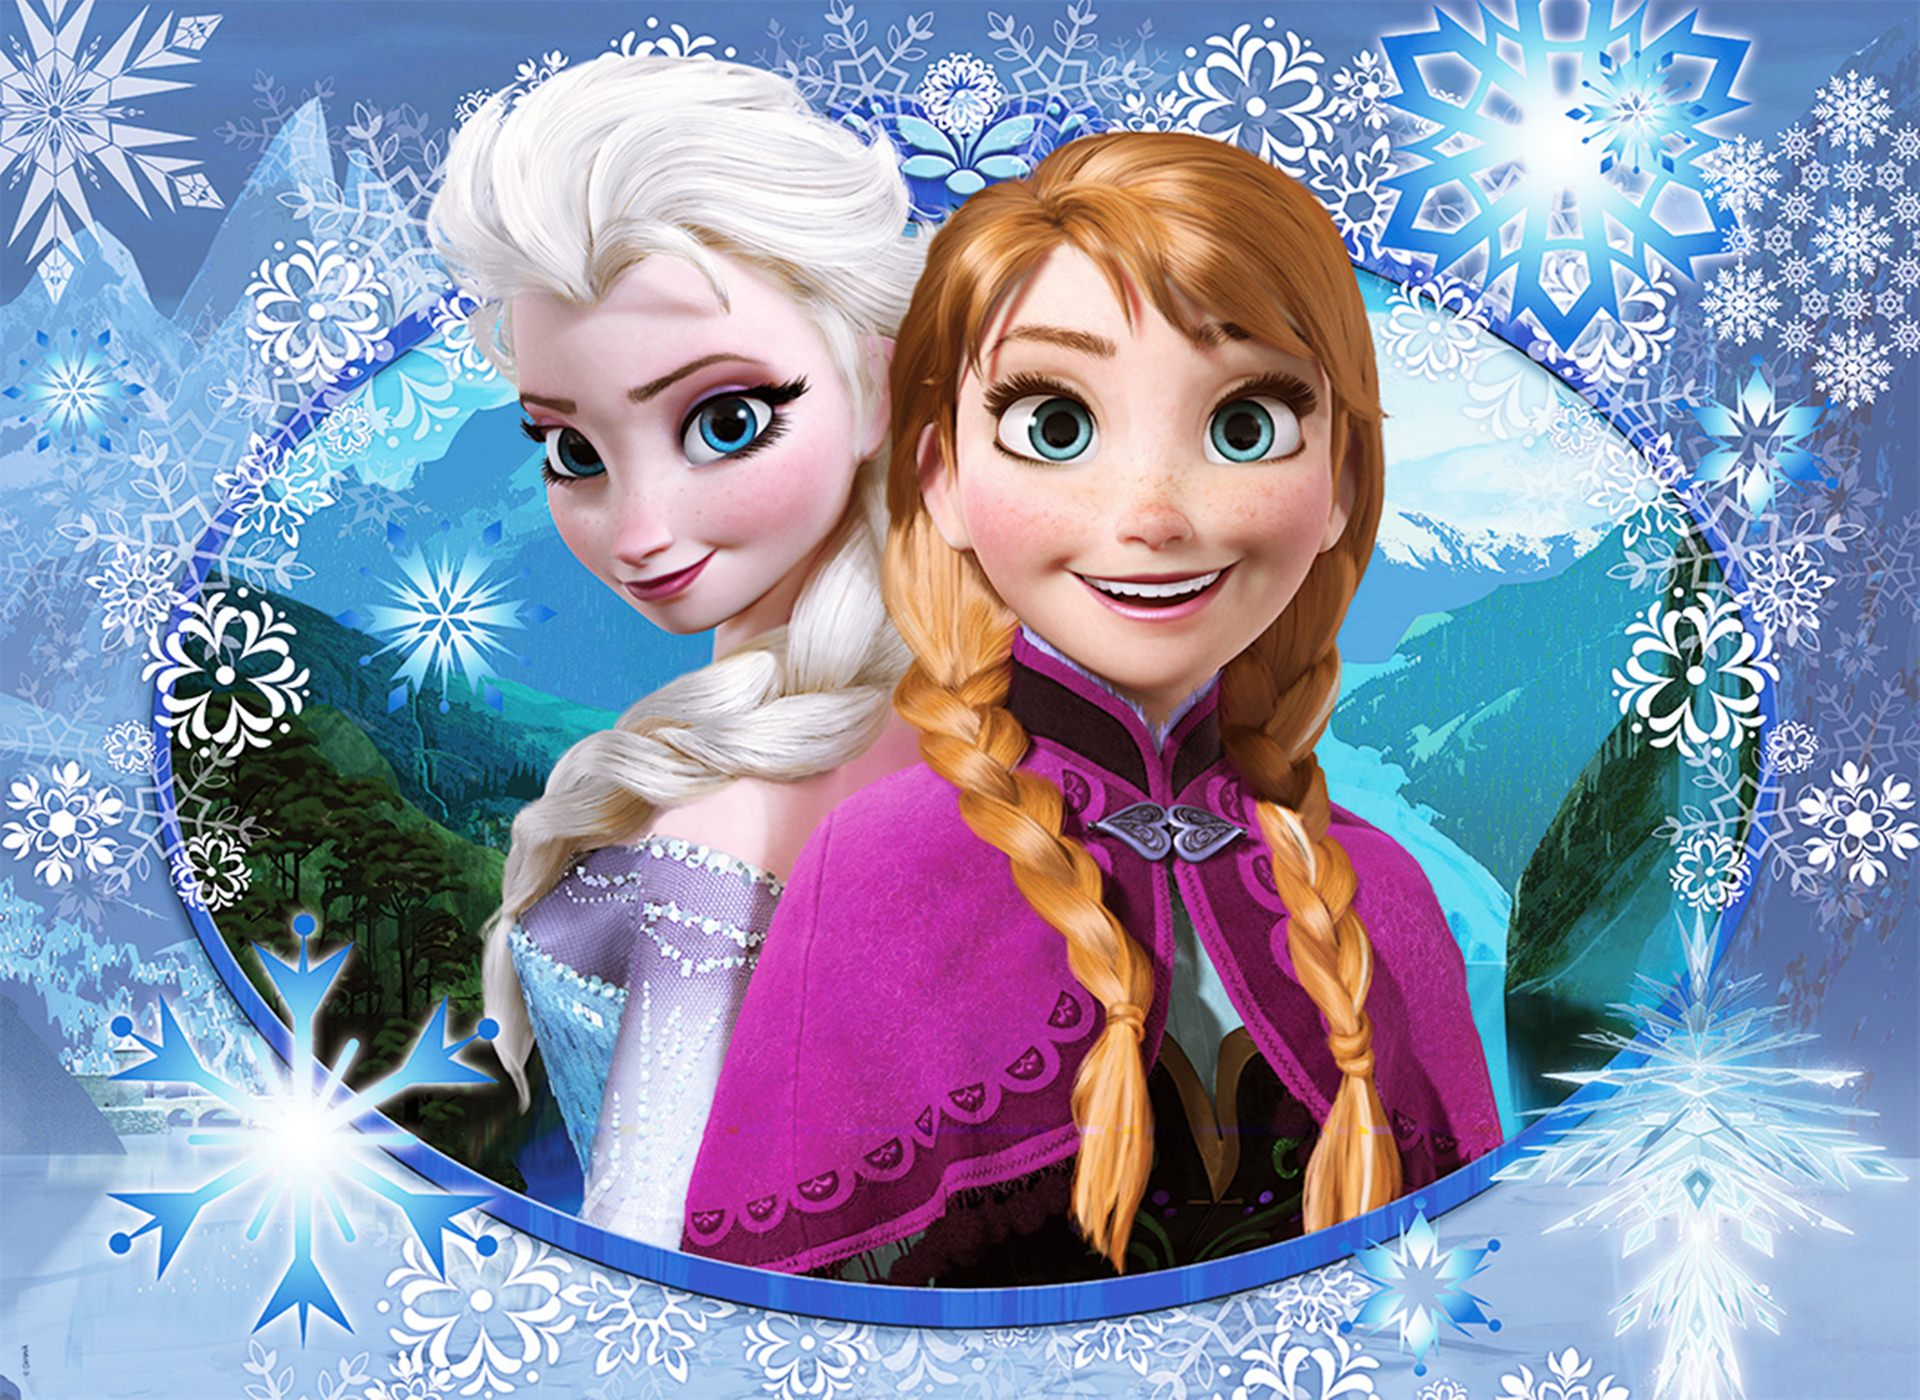 frozen christmas wallpaper - photo #31